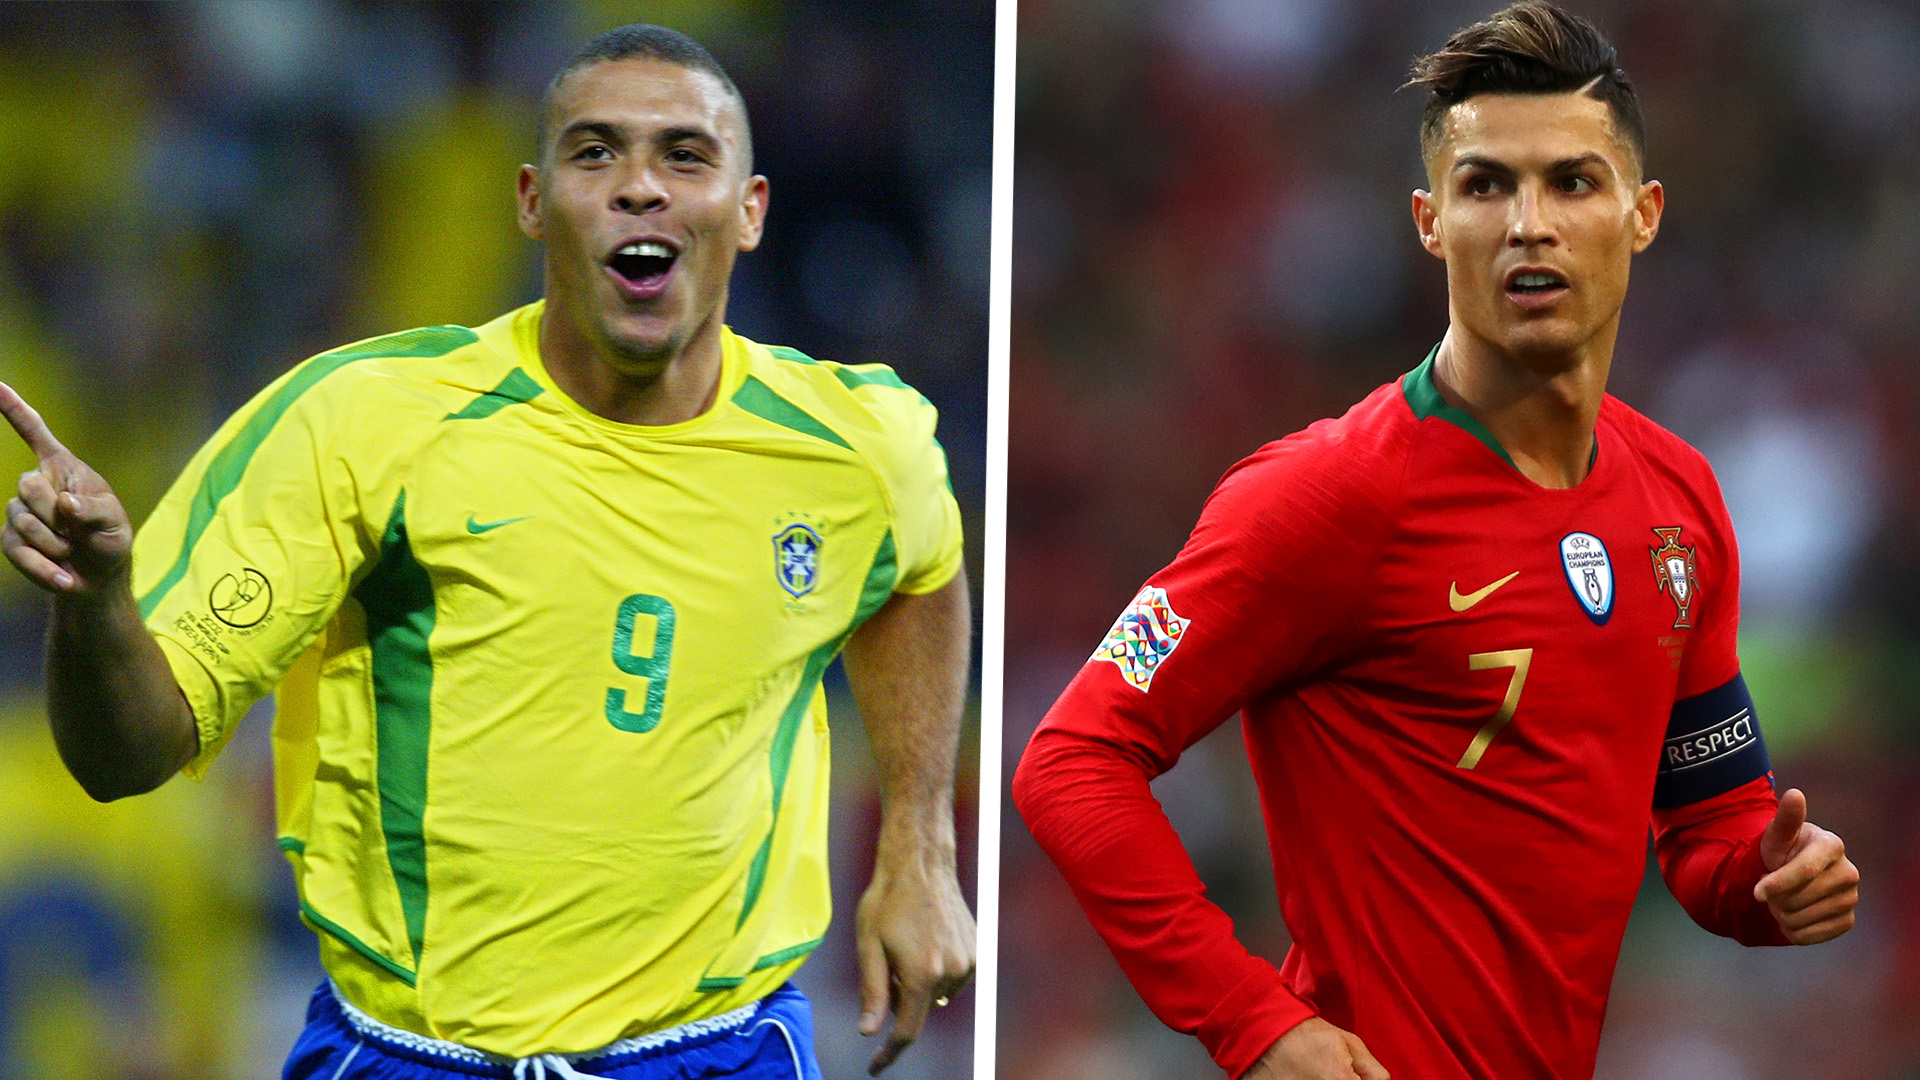 'Ronaldo has three or four tricks that you can guess' – Silvestre ranks R9 above former Man Utd colleague